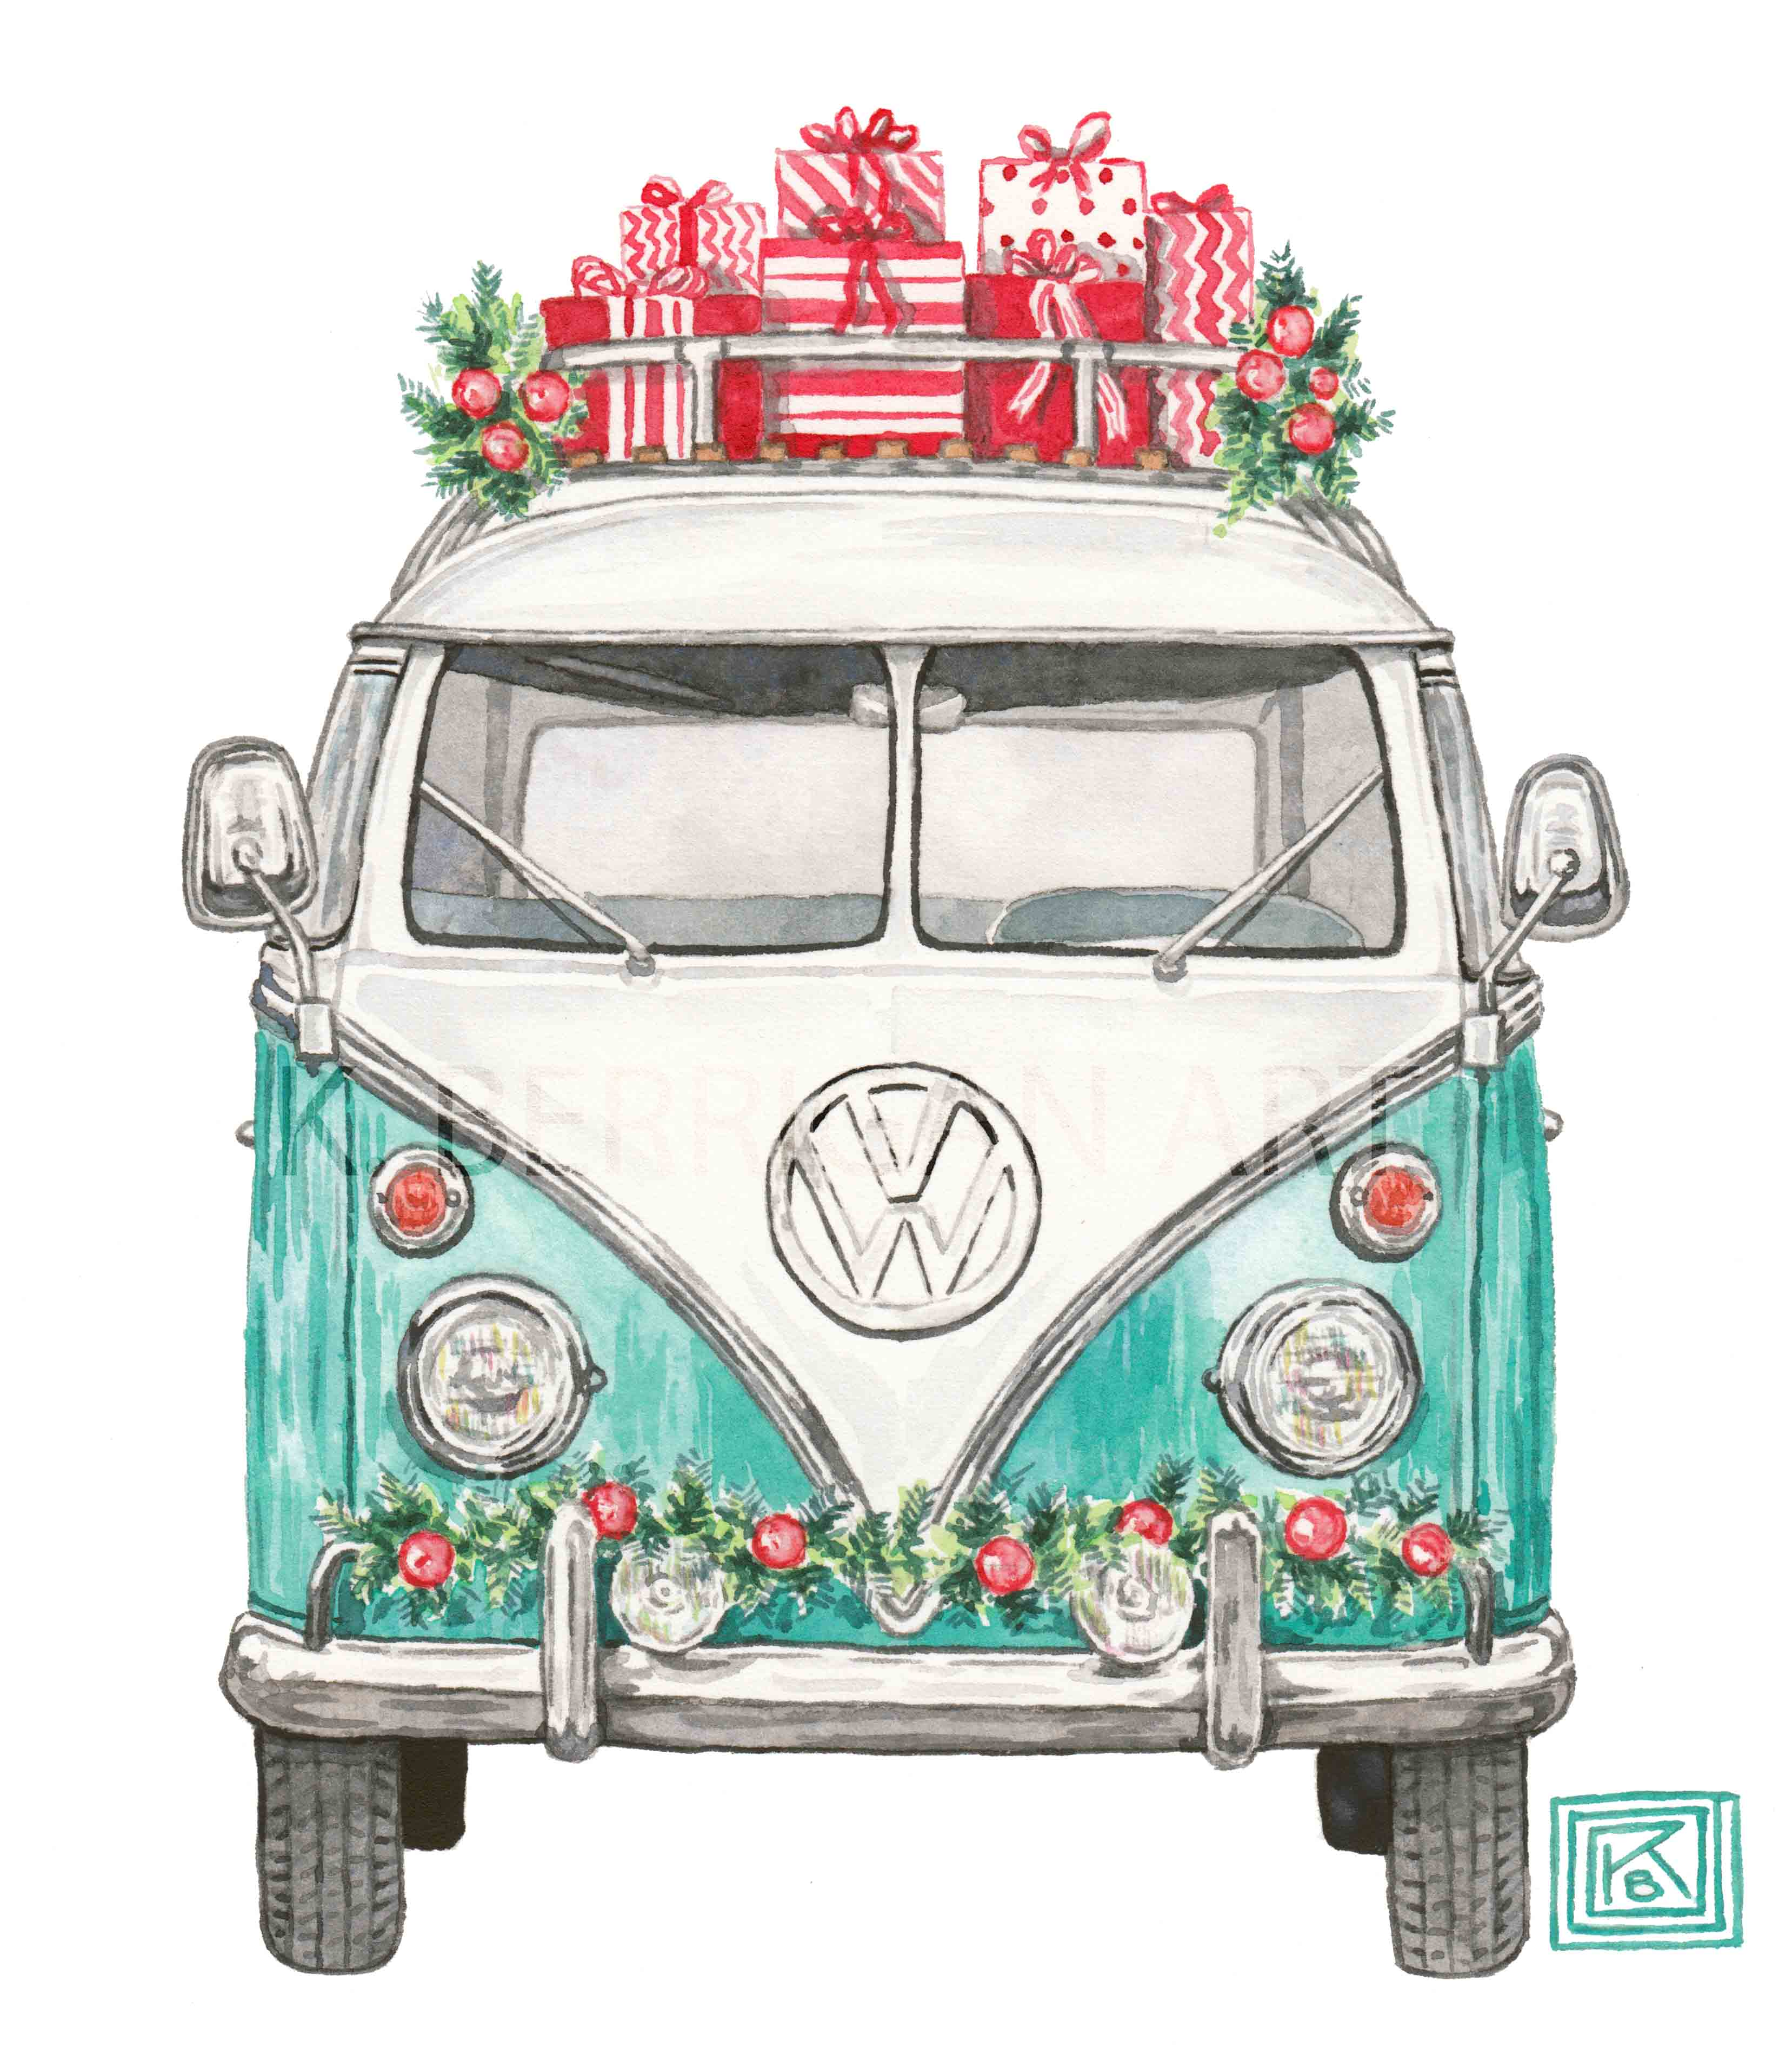 Drawn vans watercolor Van Berrigan on The Print